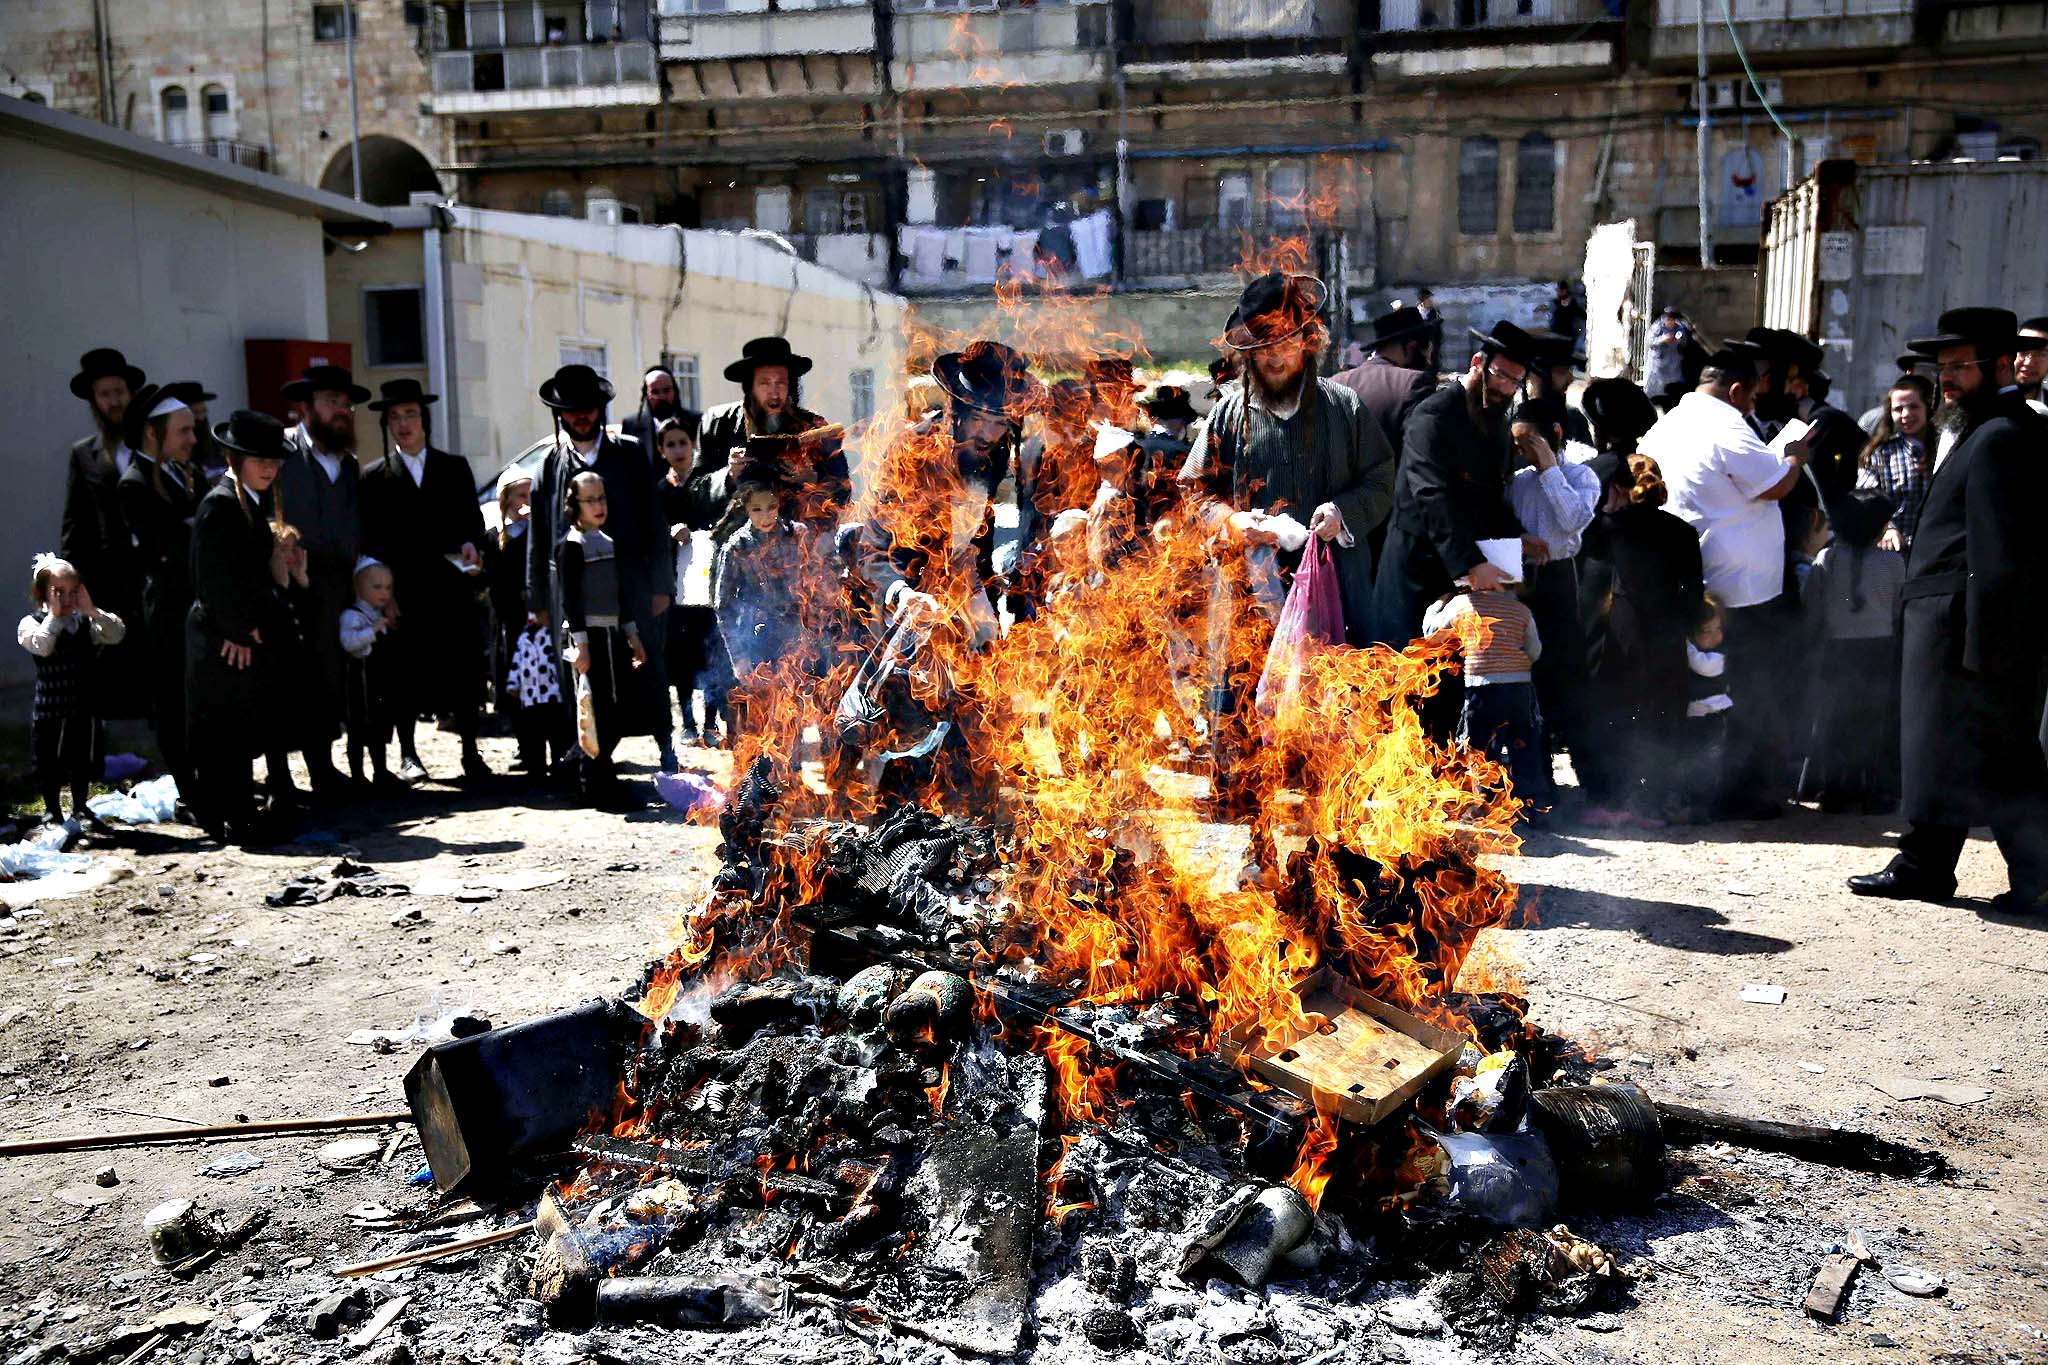 Ultra-Orthodox Jews burn leavened items in a final preparation before the start at sundown of the Jewish Pesach (Passover) holiday, on April 14, 2014 in Jerusalem. Religious Jews worldwide eat matzoth during the eight-day Pesach holiday that commemorates the Israelis' exodus from Egypt some 3,500 years ago and their ancestors' plight by refraining from eating leavened food products.